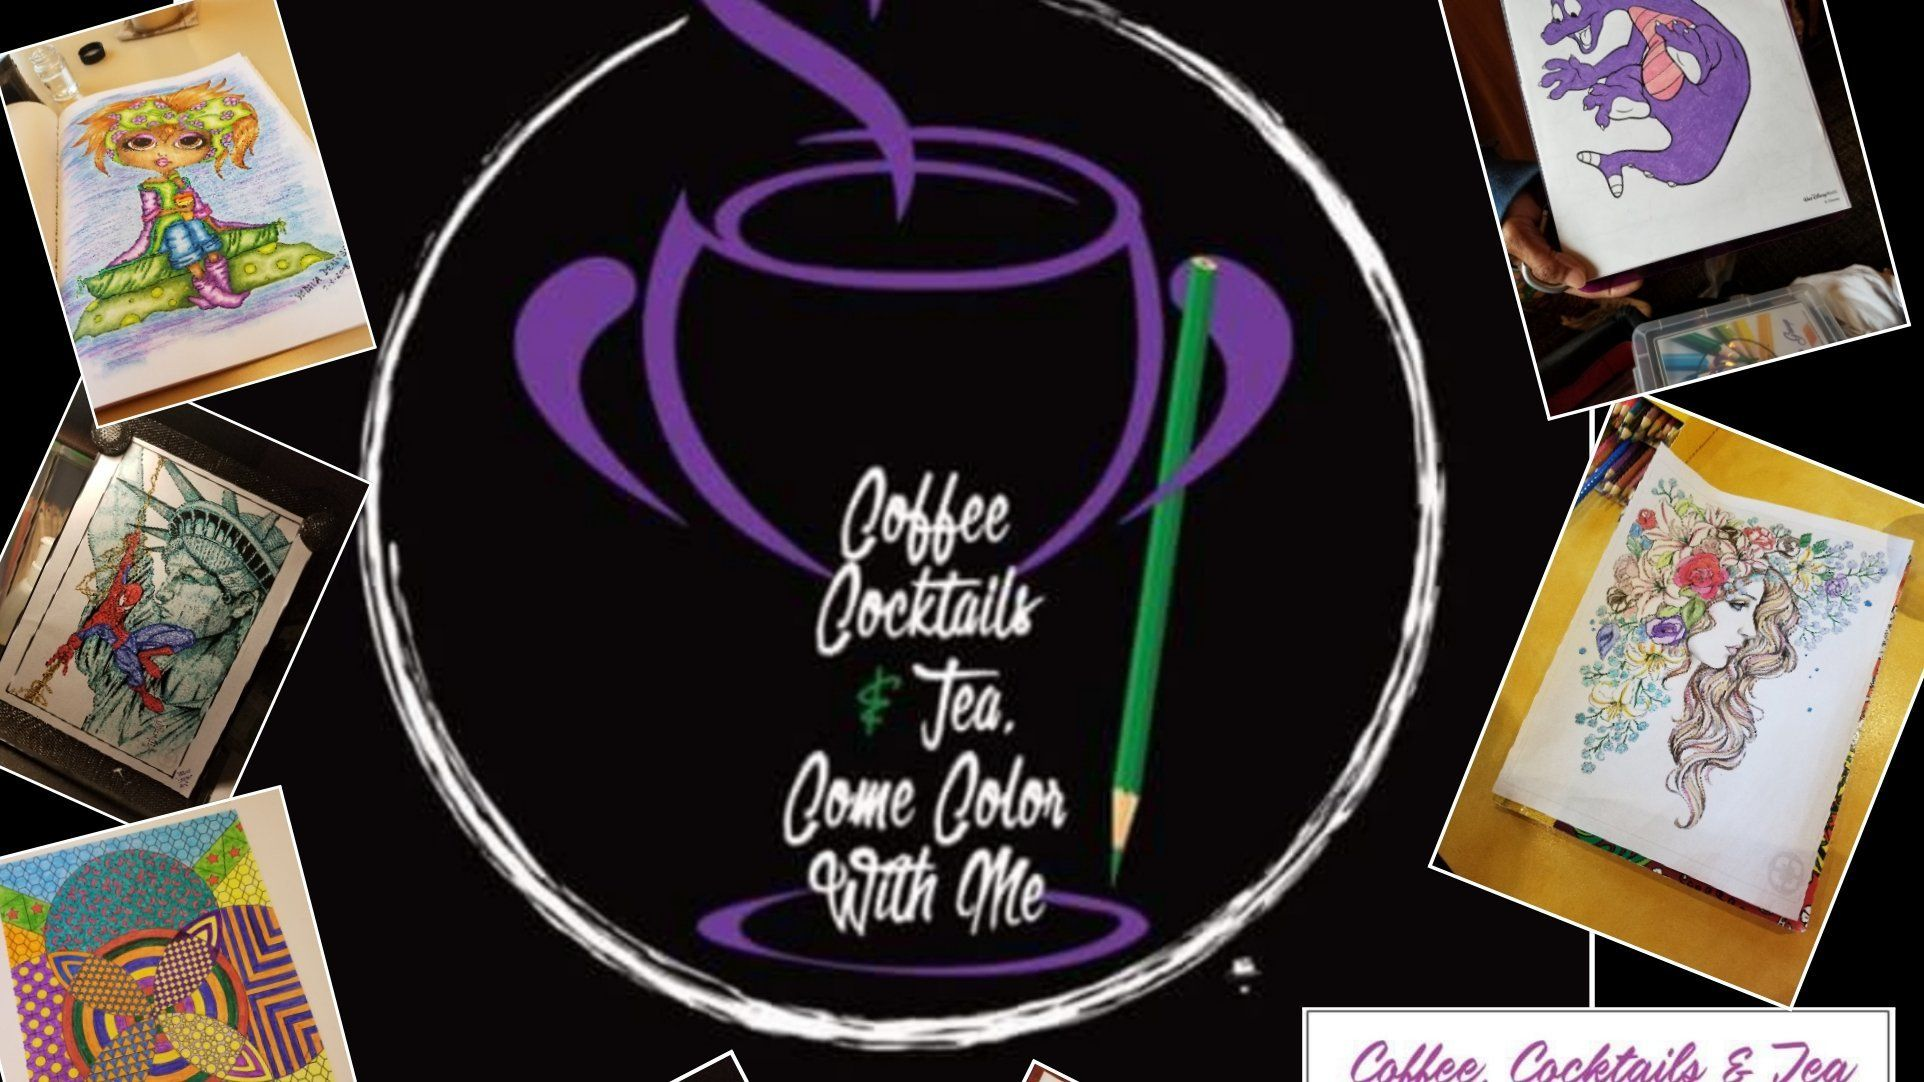 Coffee, Cocktails and Tea...Come Color With Me